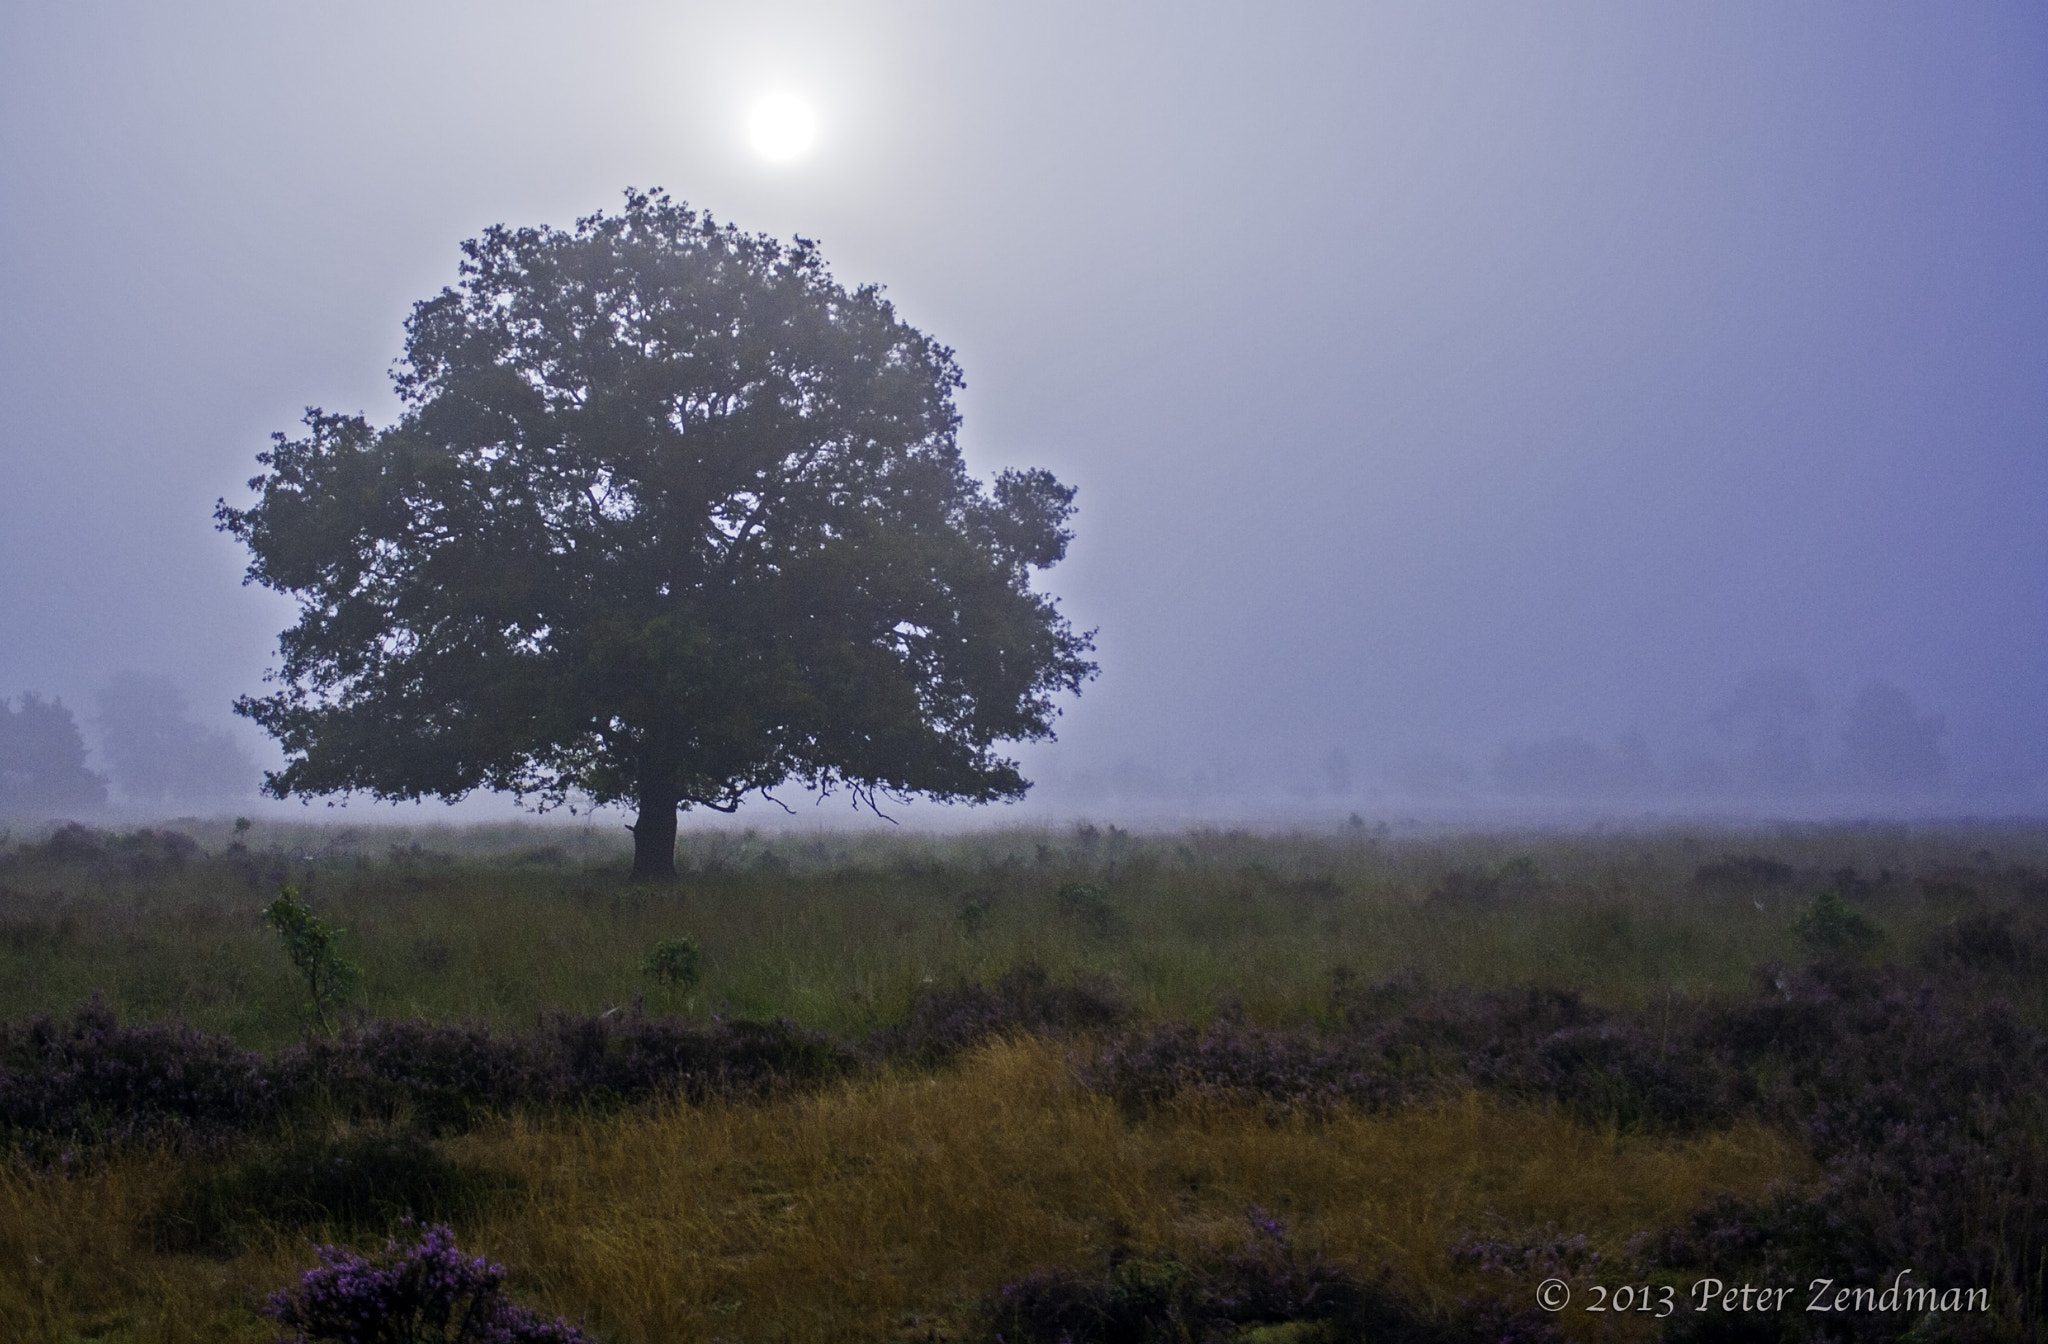 Photograph Oak in the fog by Peter Zendman on 500px